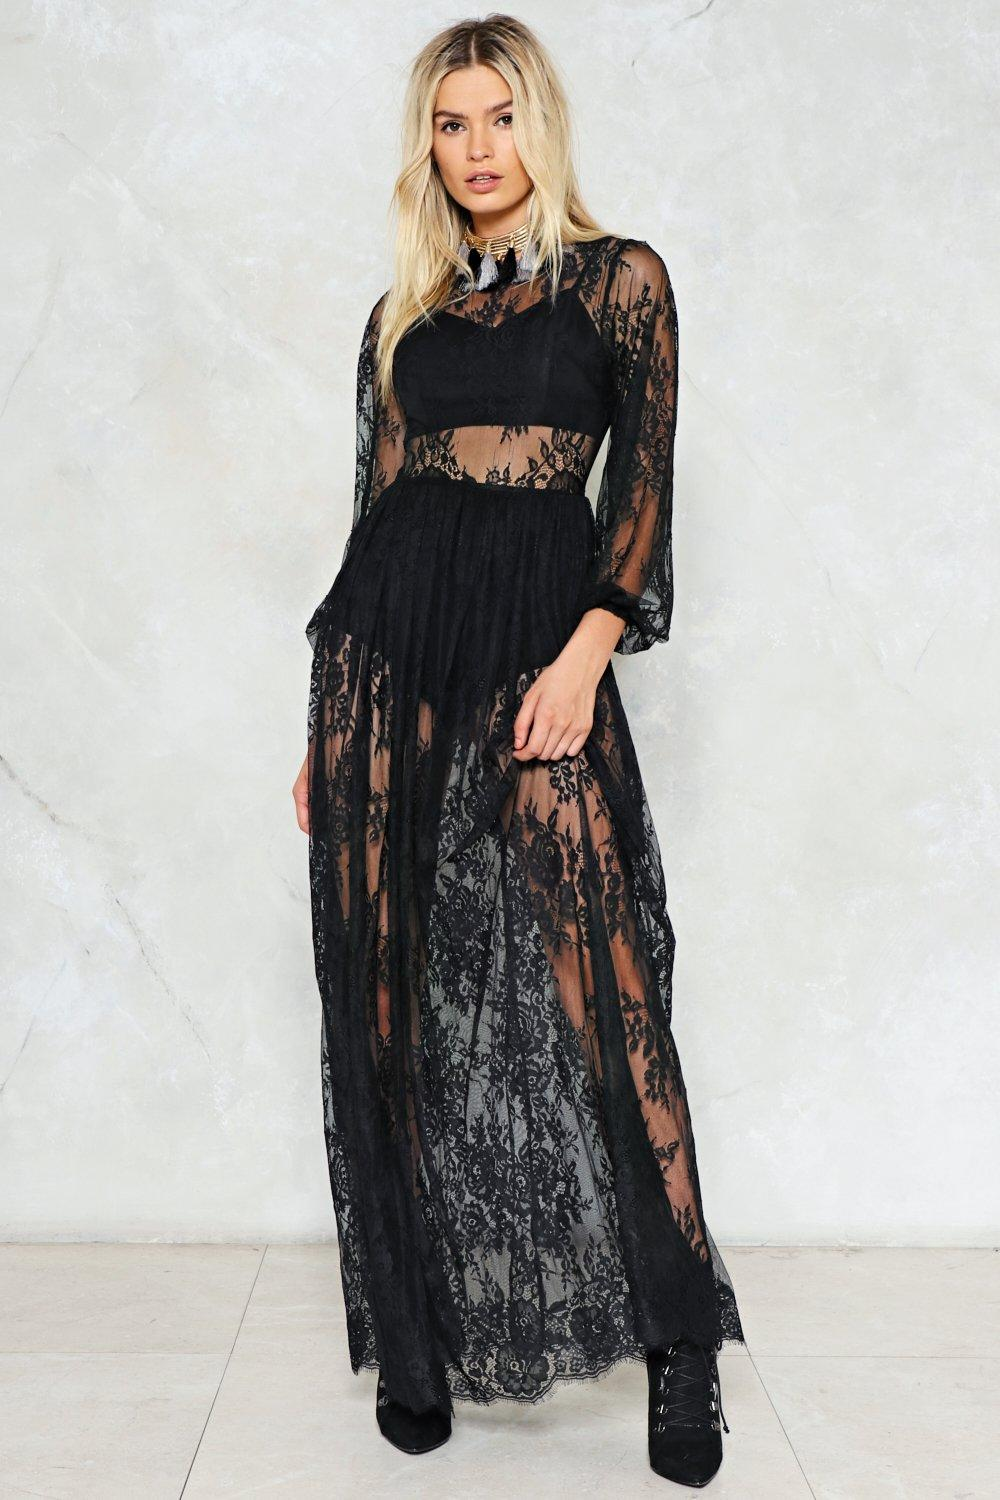 7b7c4a2b97b8 Endless Lace Maxi Dress | Shop Clothes at Nasty Gal!